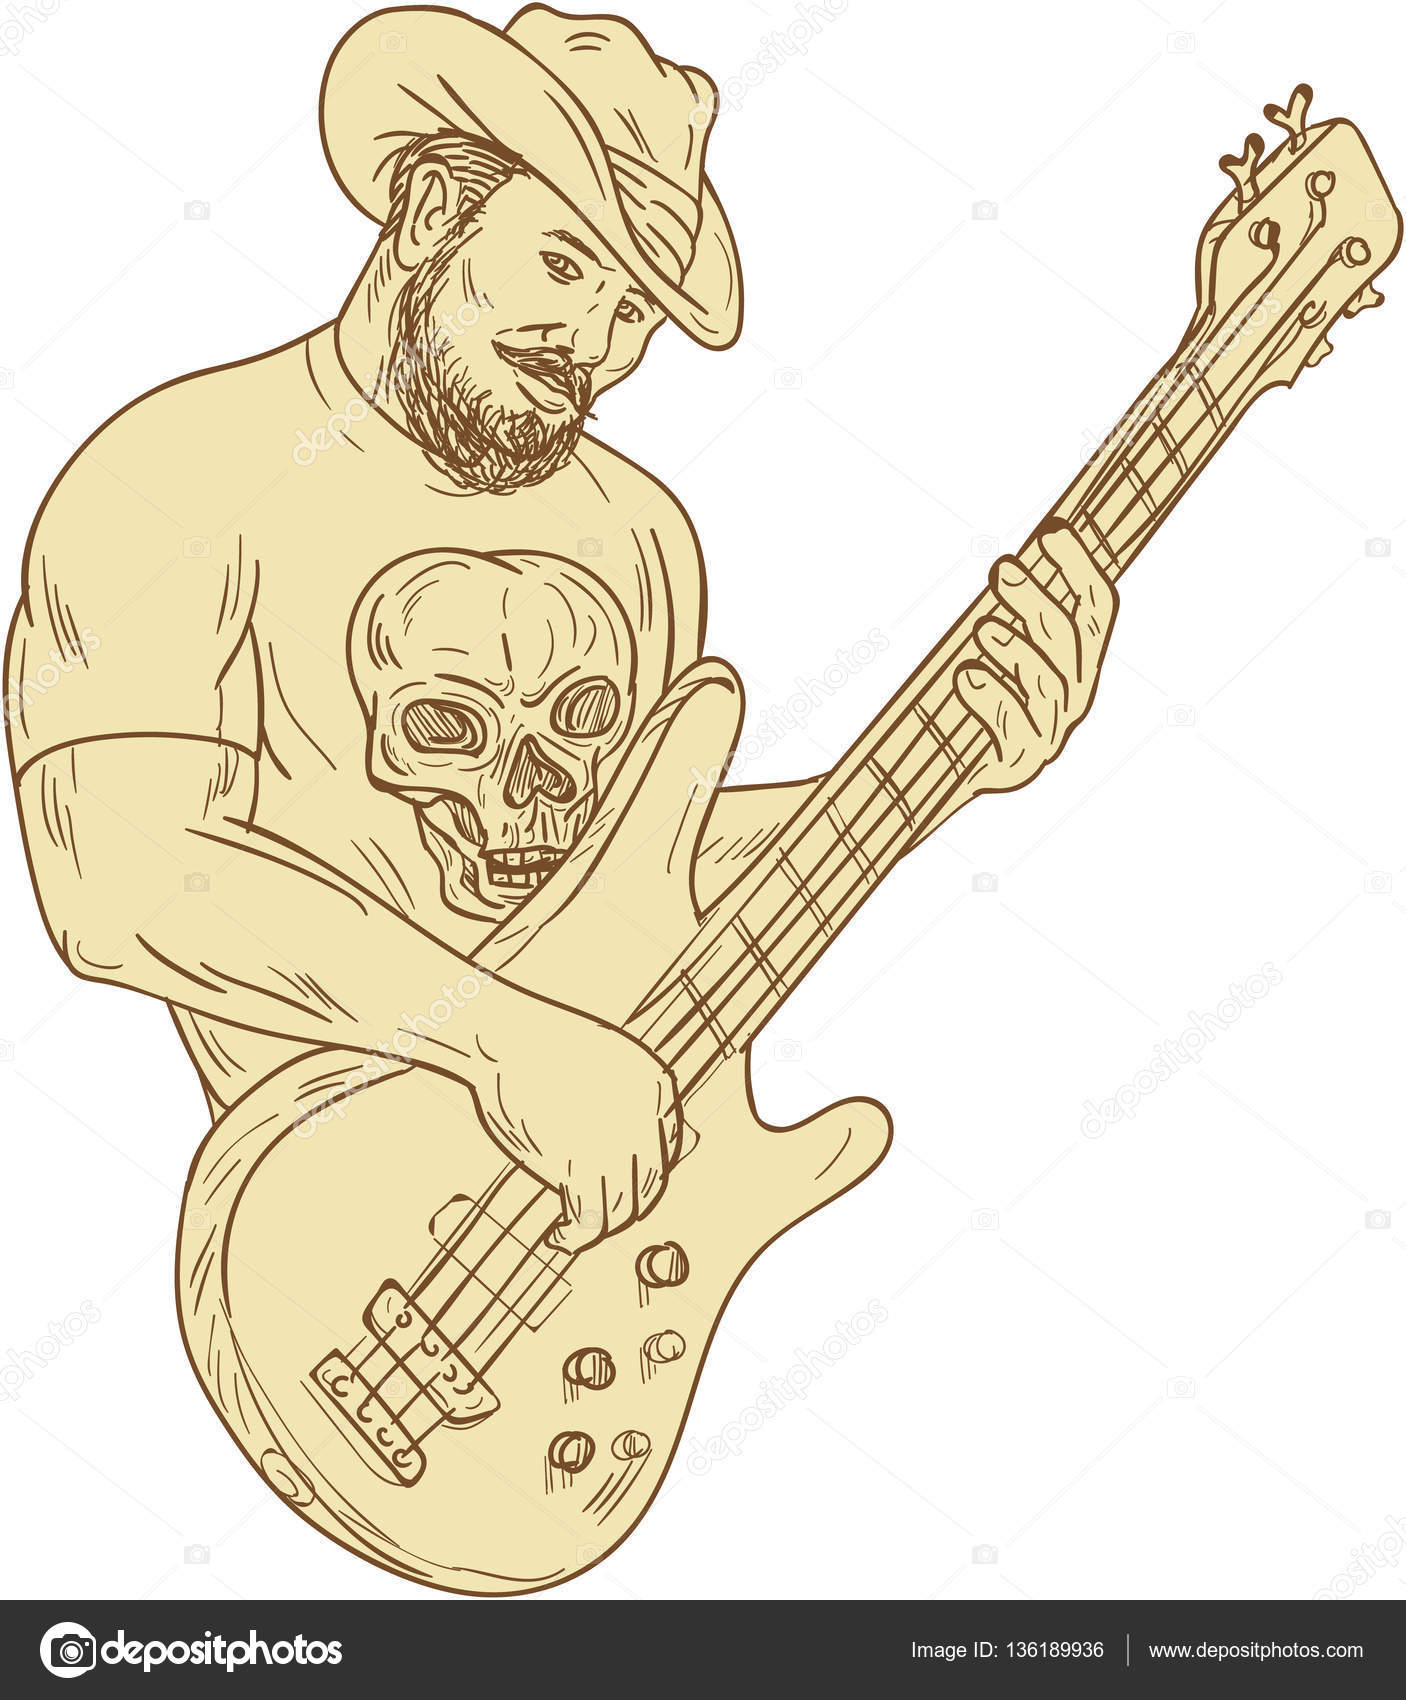 Drawing Sketch Style Illustration Of A Bearded Cowboy Wearing Hat Holding Playing Bass Guitar Viewed From Front Set On Isolated White Background